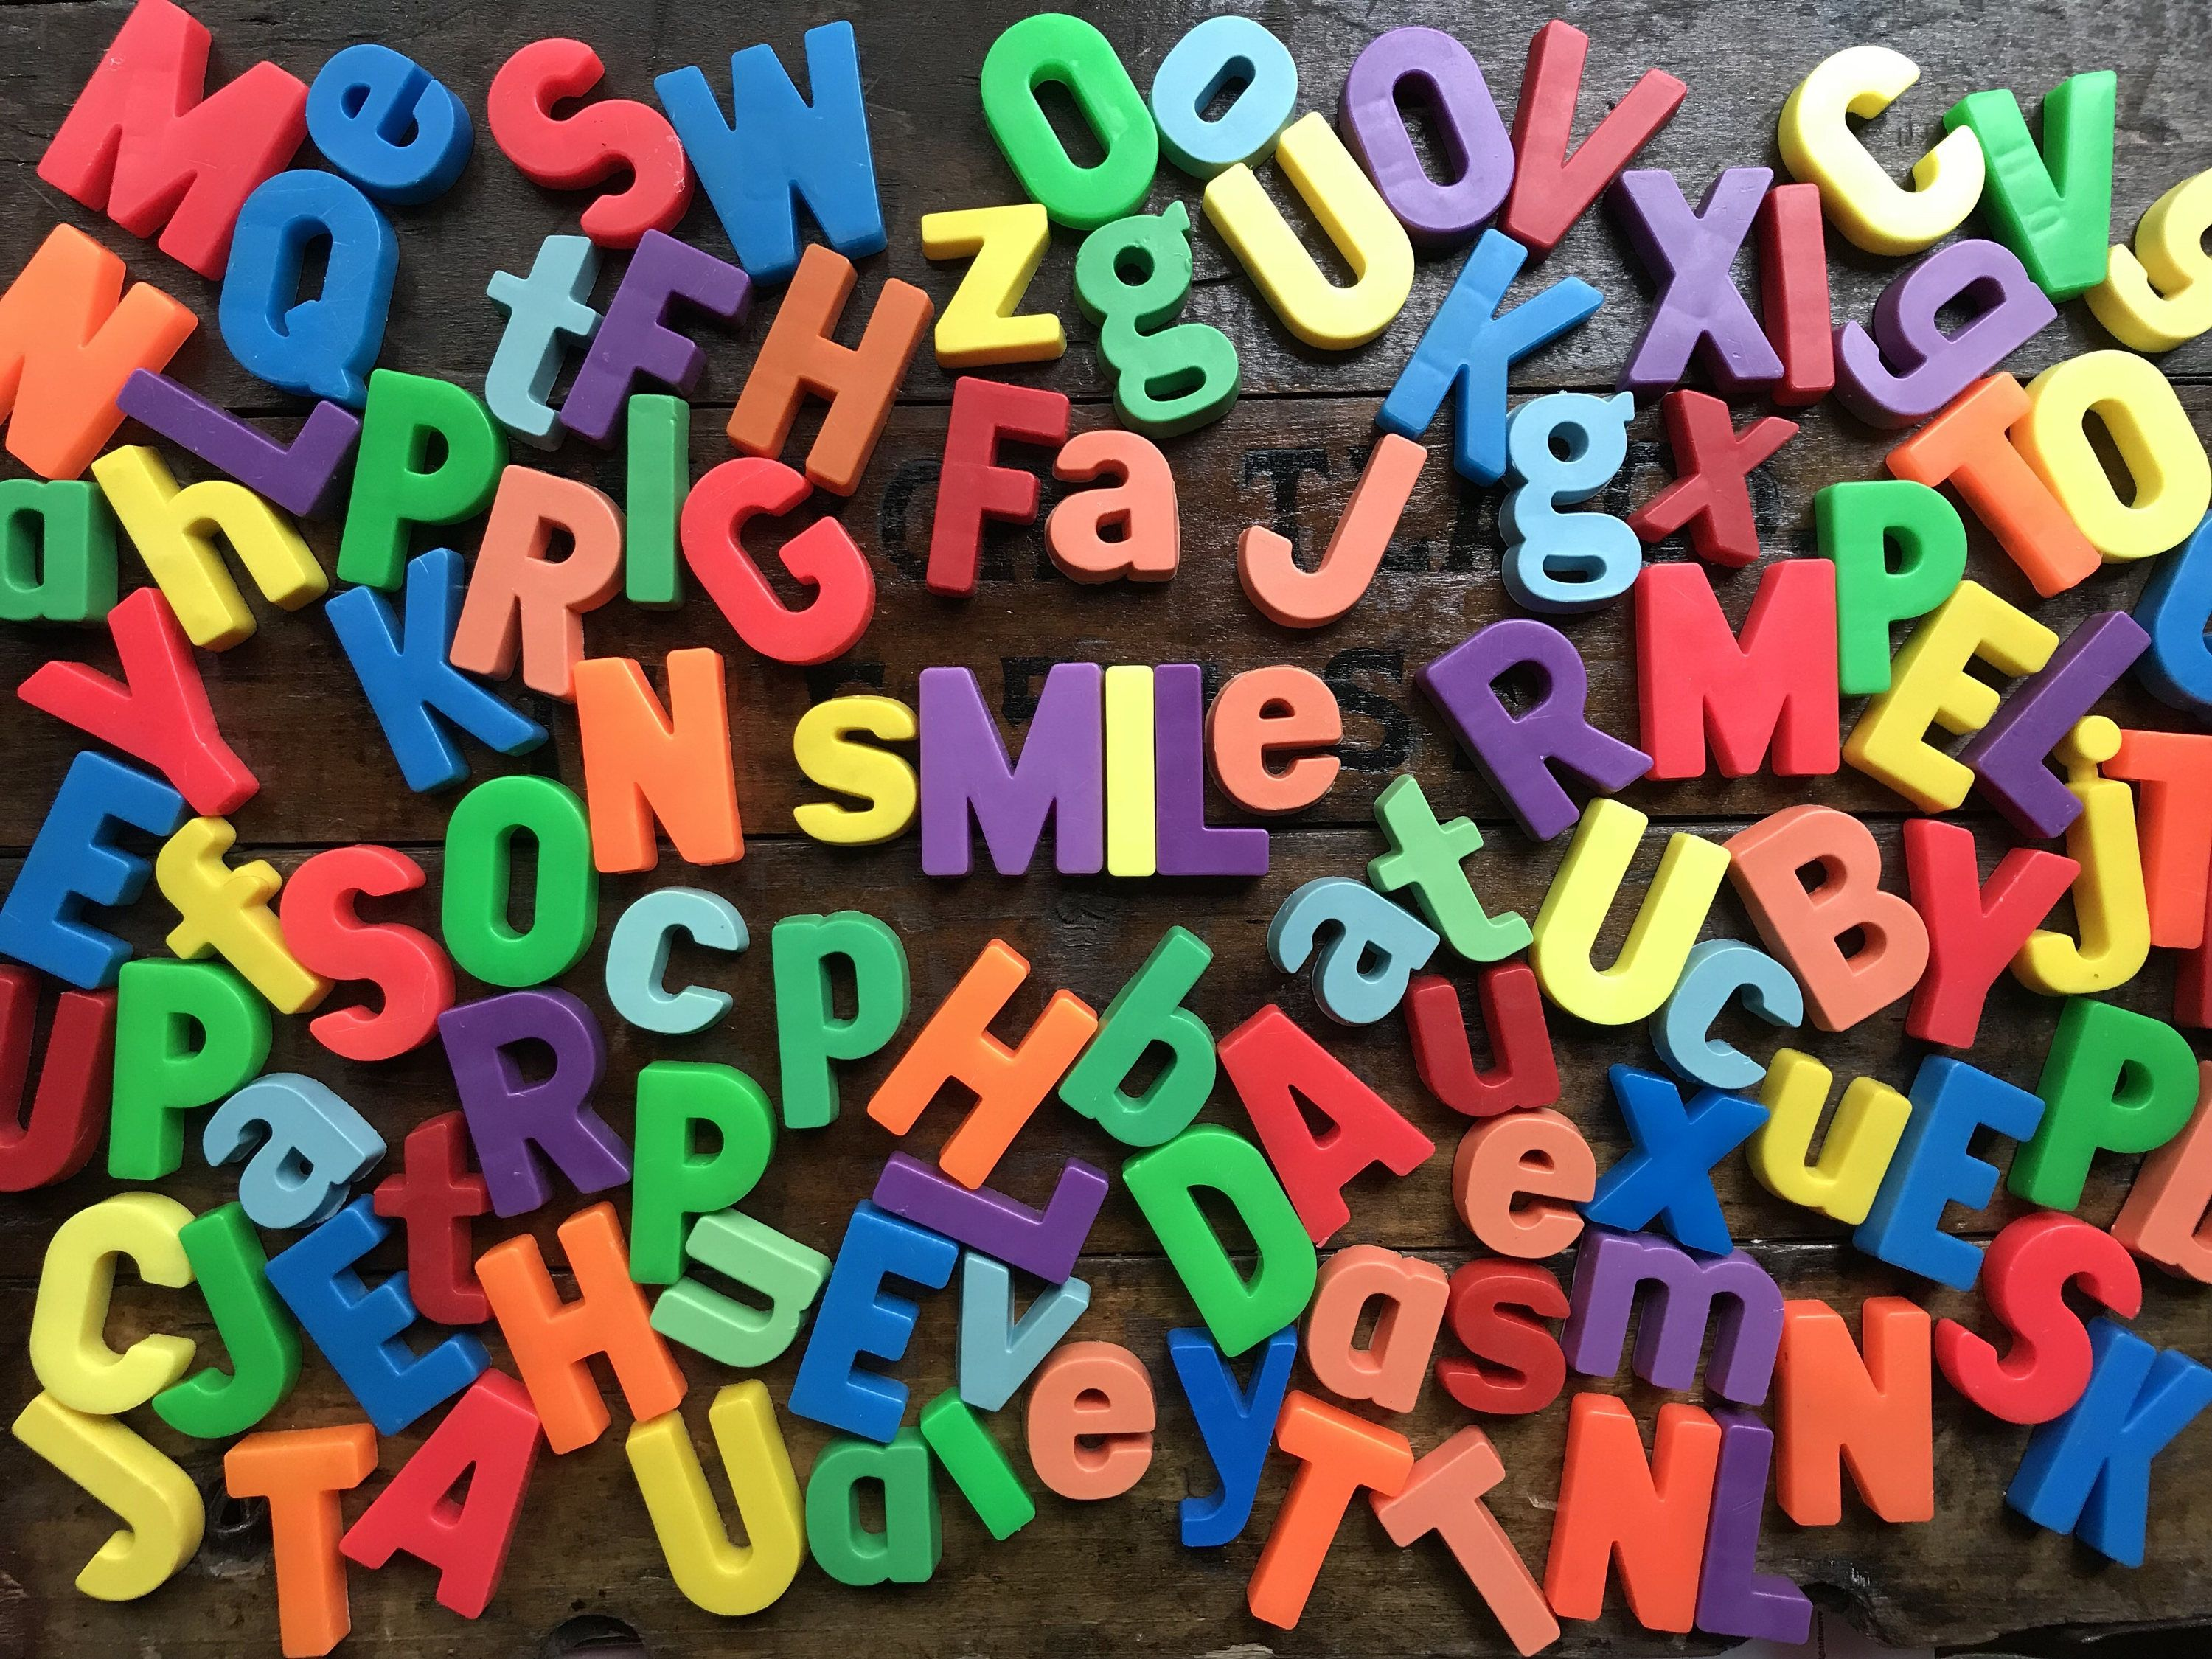 Fisher Price Letters Vintage Large Lot of 100